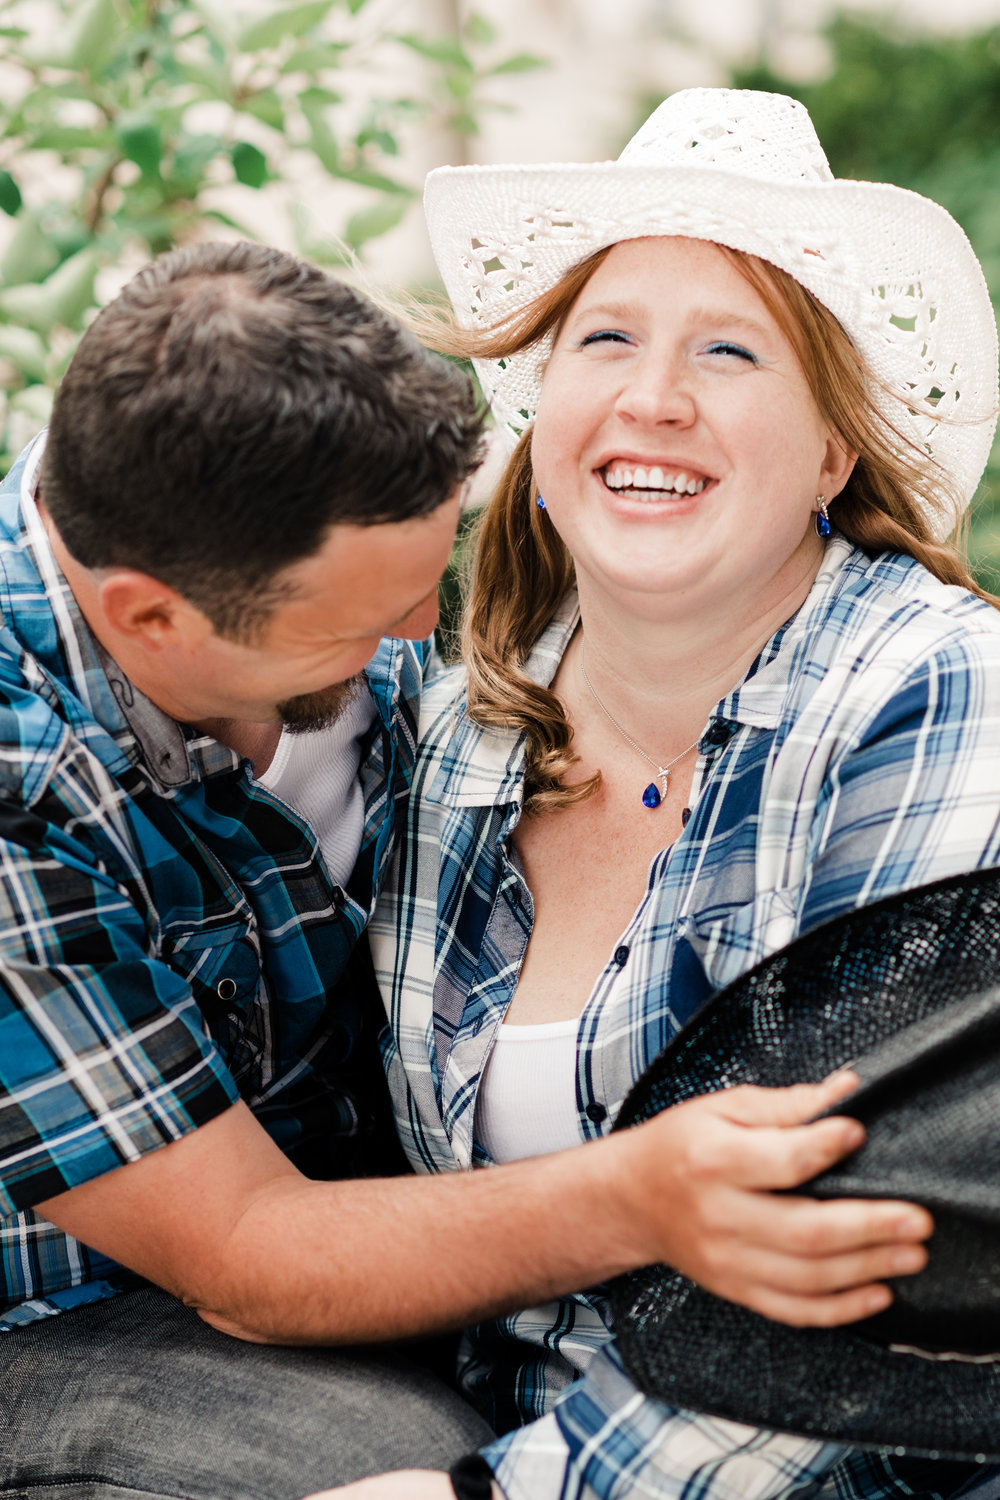 Engagement photo of couple laughing and wearing cowboy hats and plaid shirts at the Chazen Museum of Art in Madison, WI.